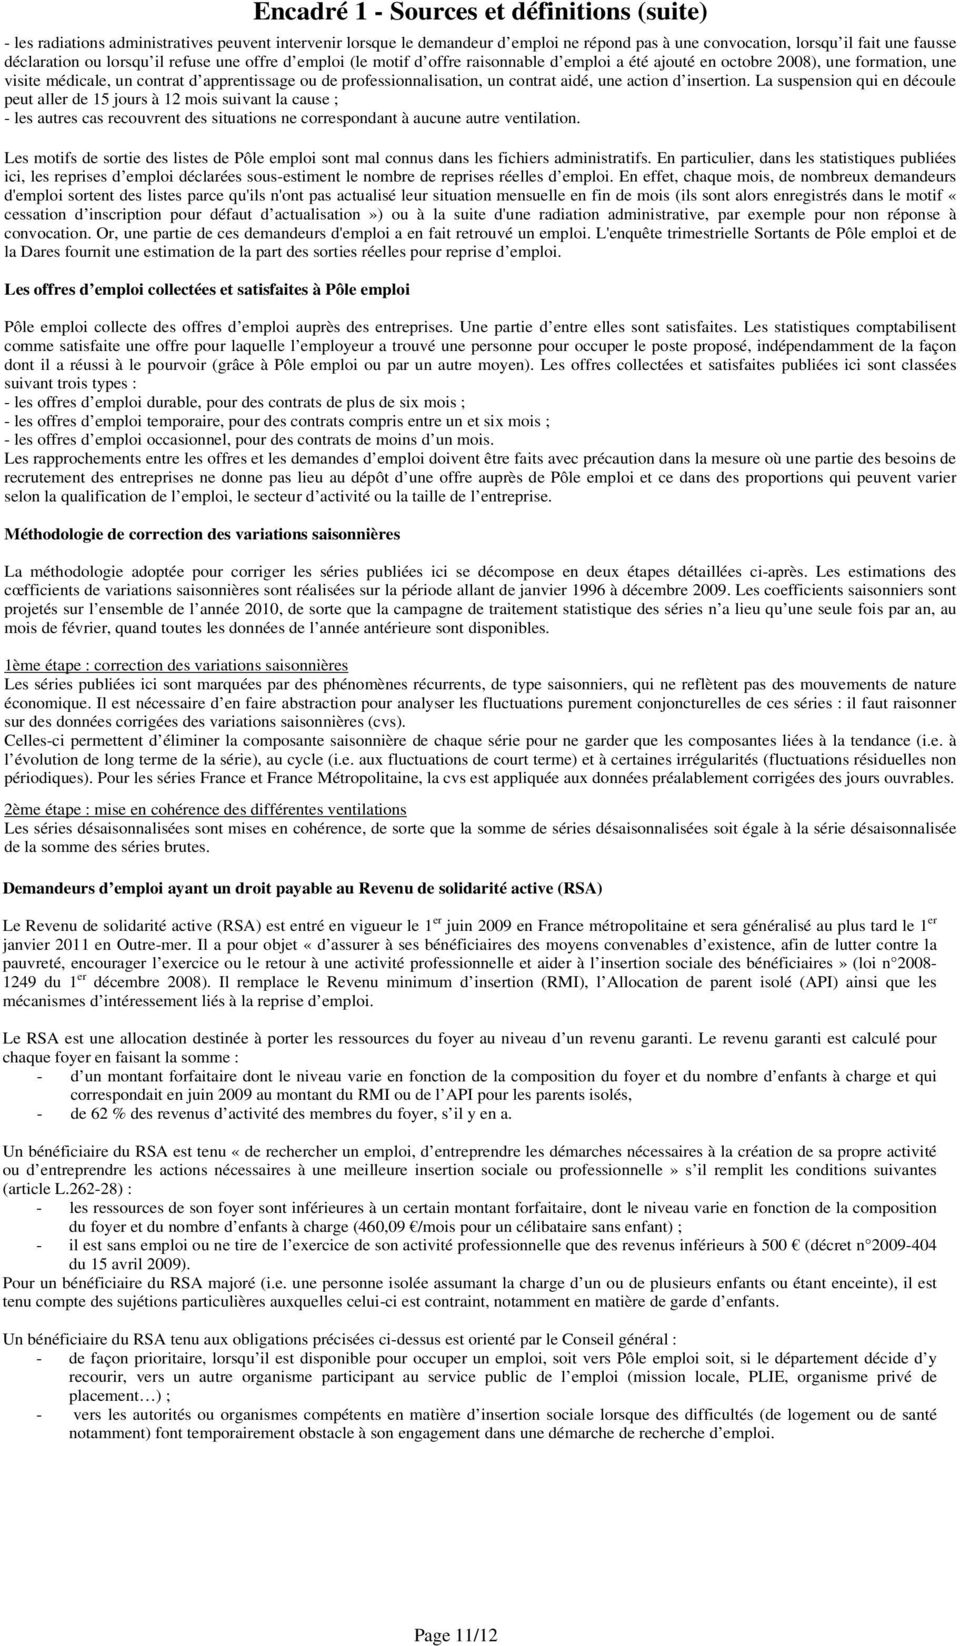 contrat aidé, une action d insertion.